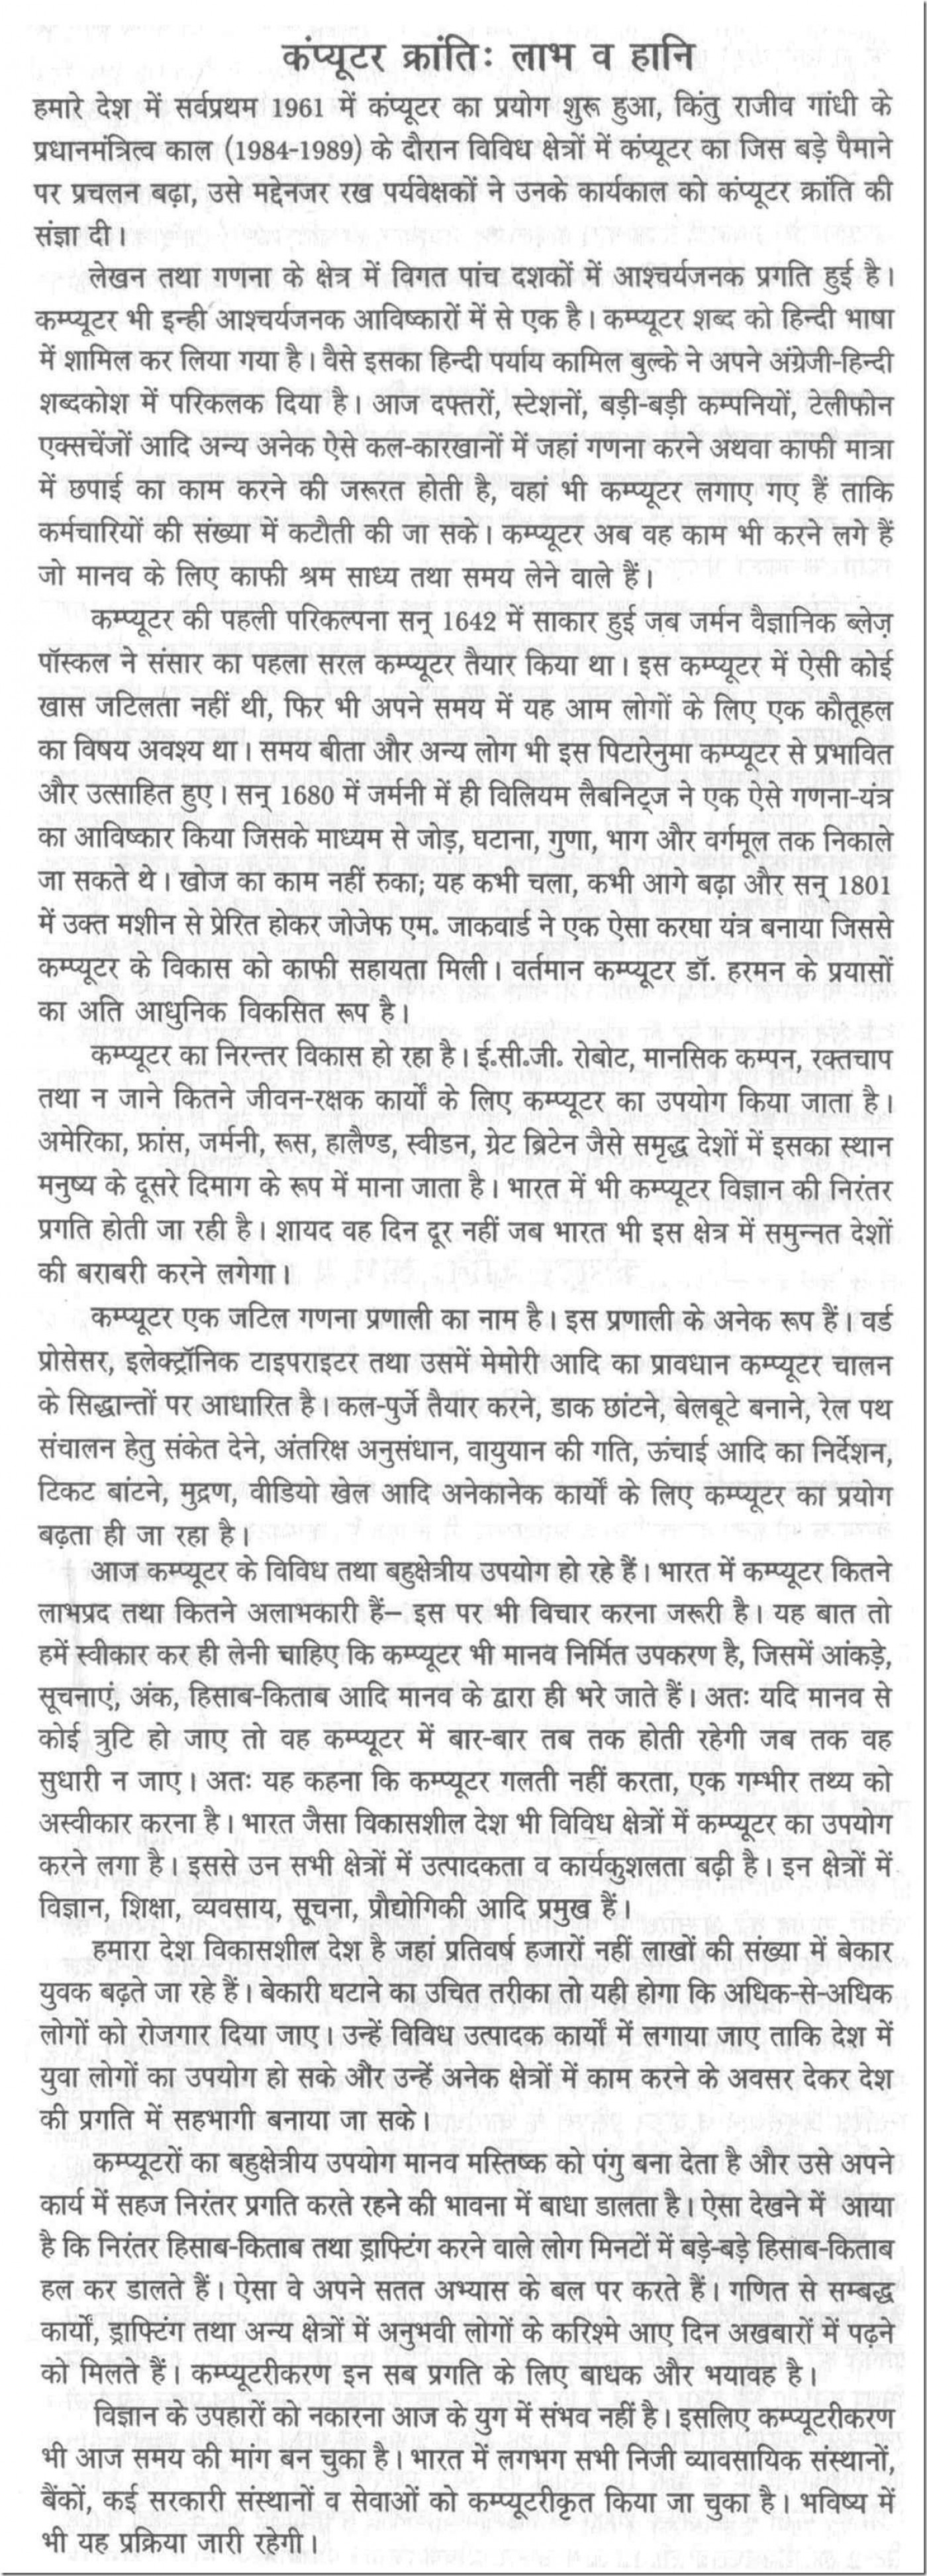 007 Essay Example 10008 Thumb Advantage And Disadvantage Of Shocking Science Advantages Disadvantages Pdf In Hindi English 1400